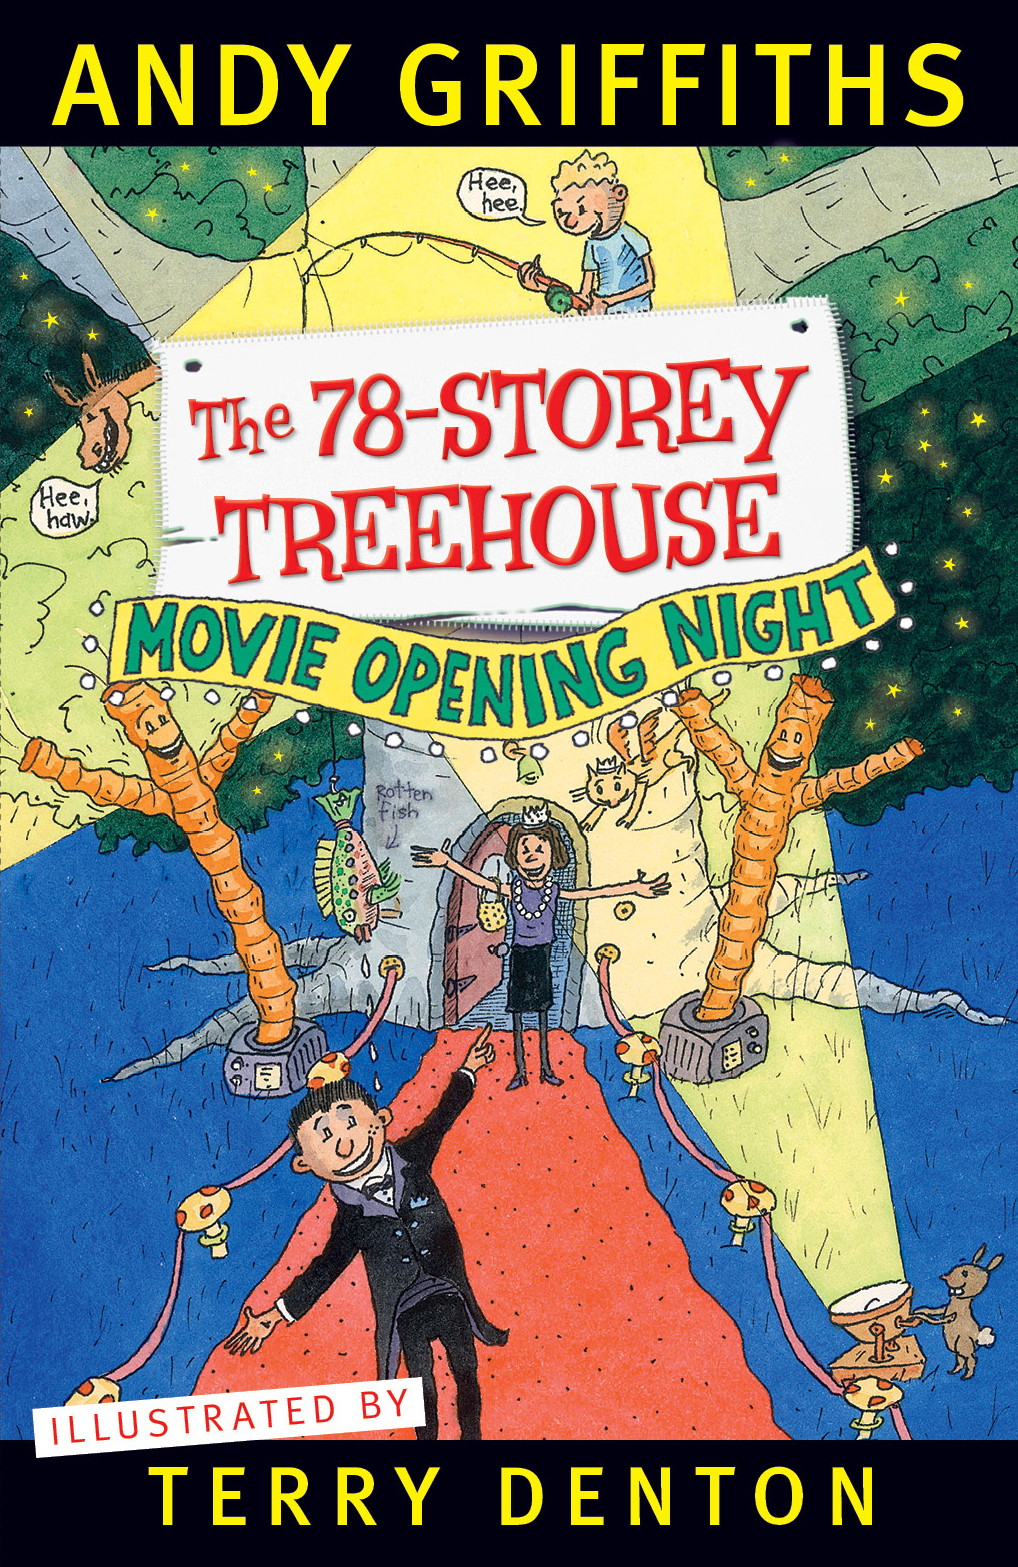 The 78-Storey Treehouse by Andy Griffiths, Terry Denton, ISBN: 9781743535004